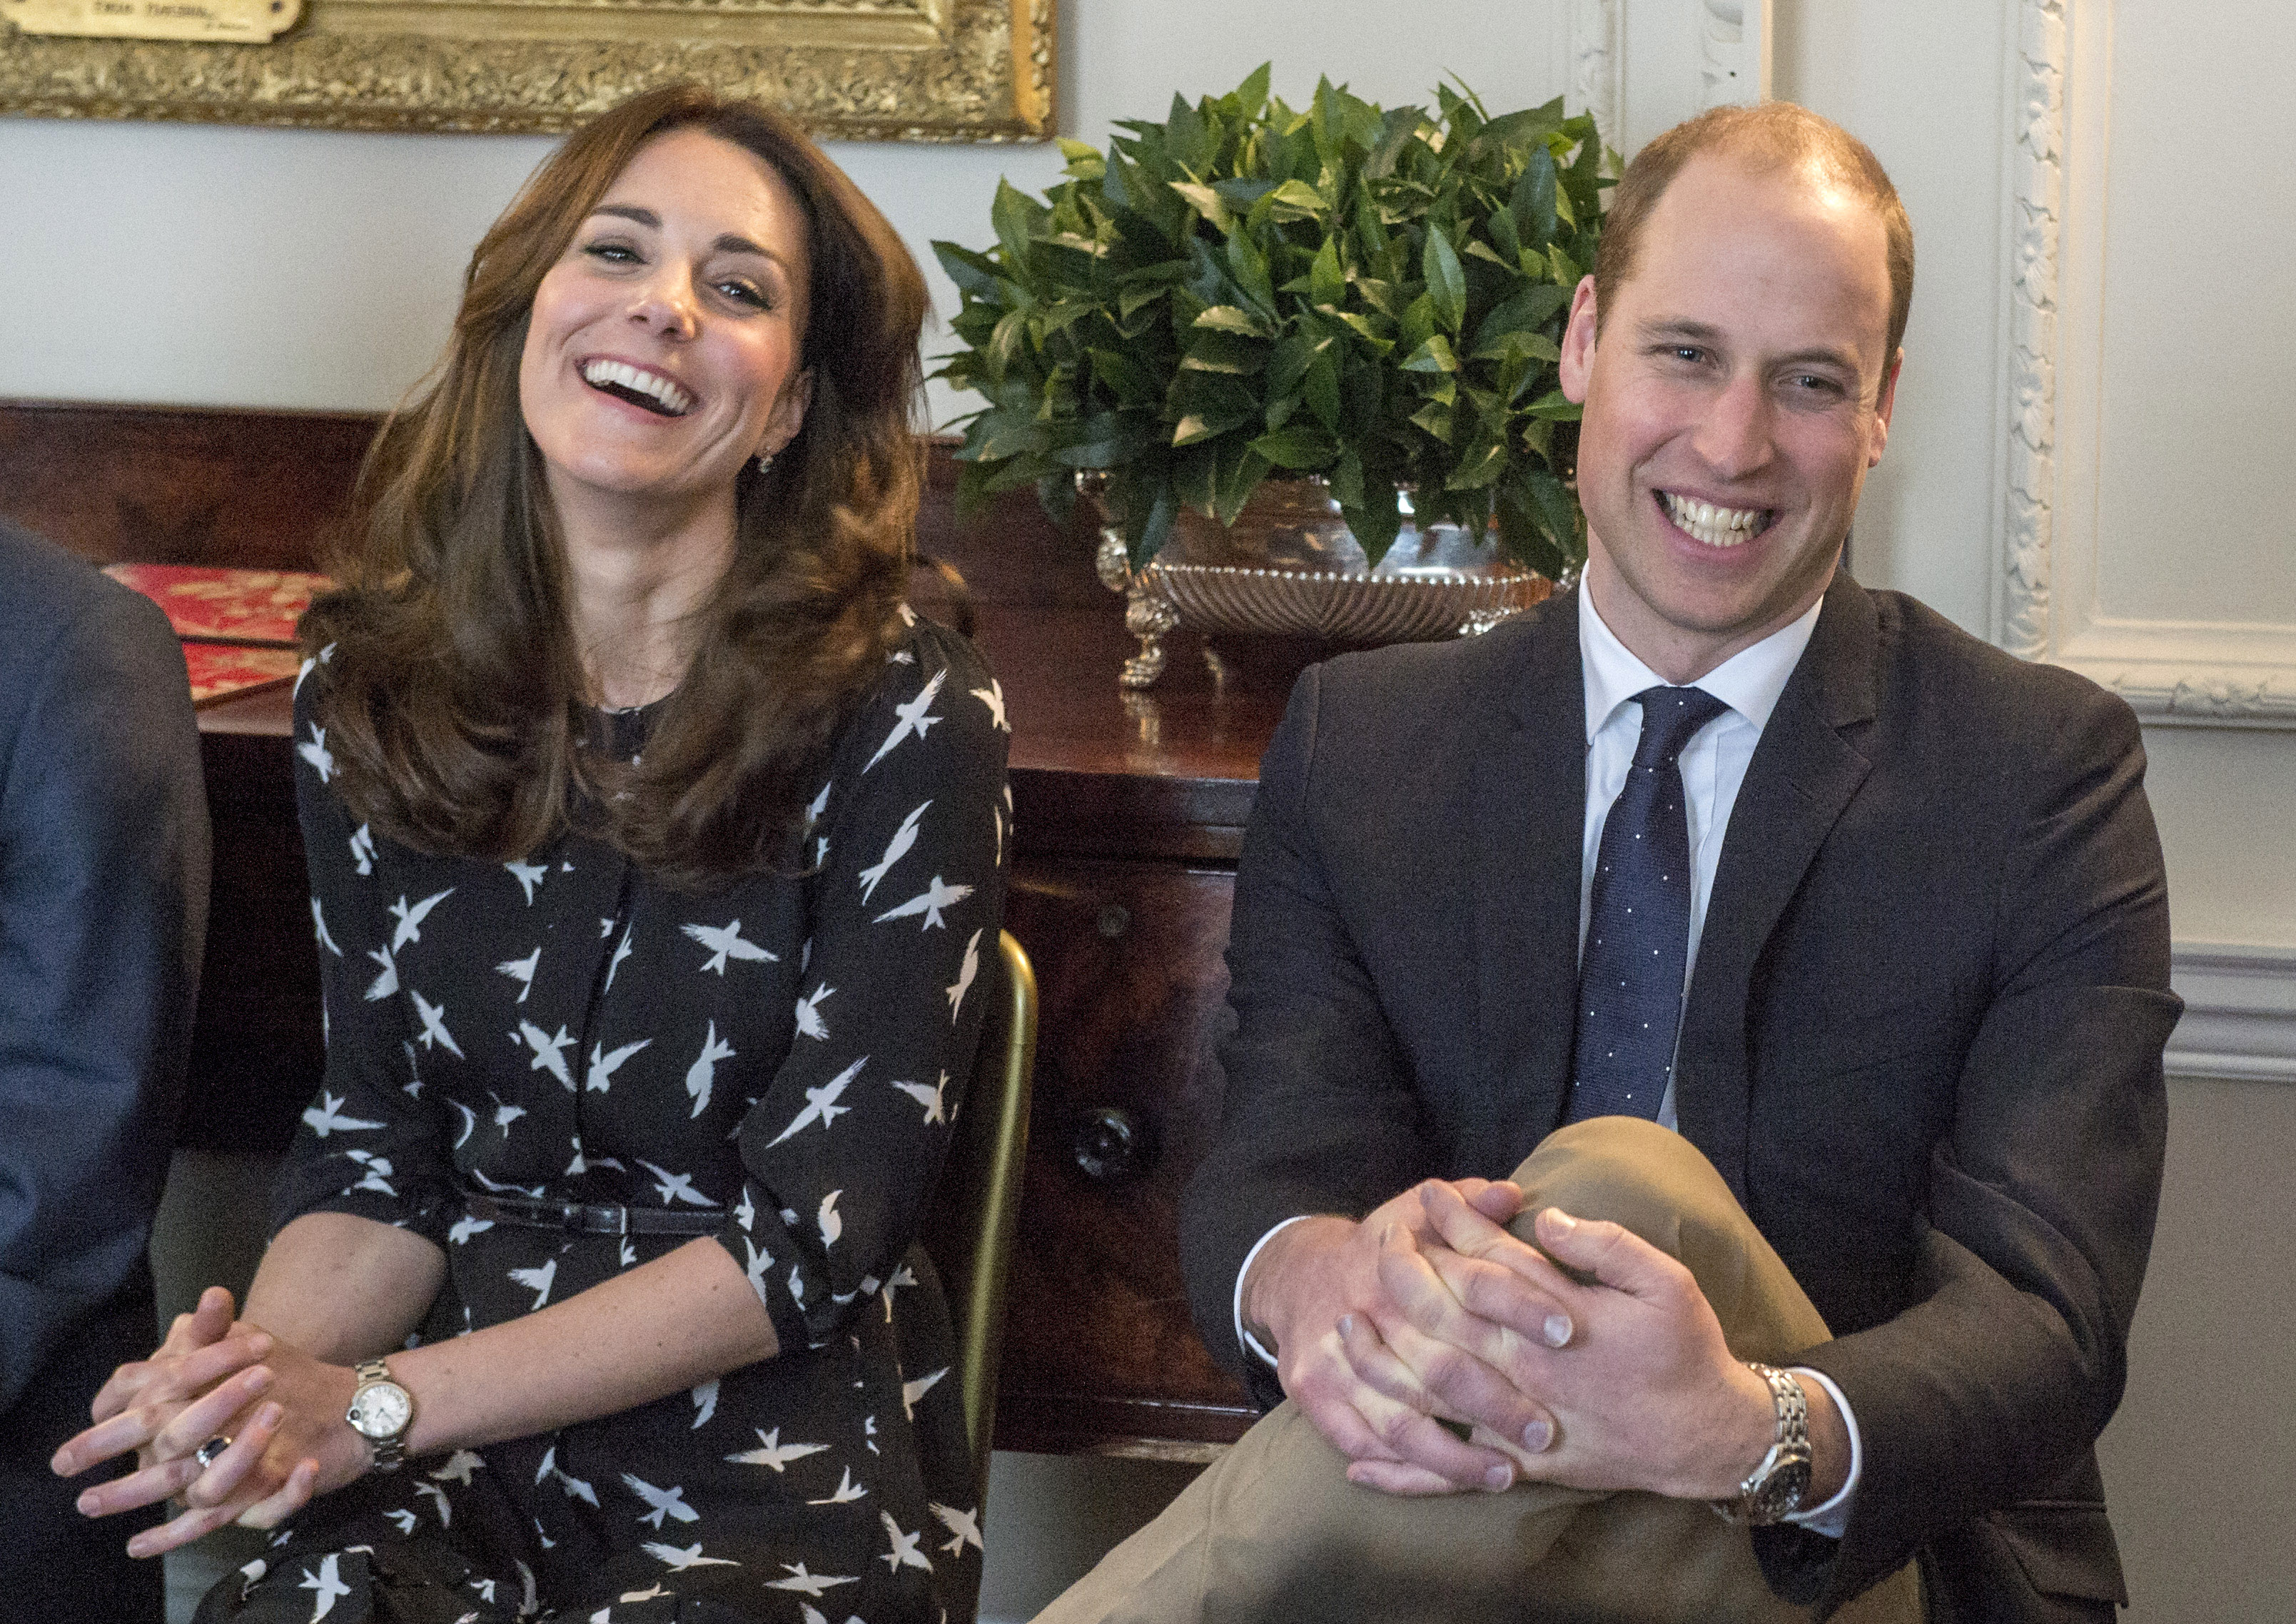 Catherine, Duchess of Cambridge and Prince William, Duke of Cambridge  met with Jonny Benjamin and Neil Laybourn at  Kensington Palace on March 10, 2016 in London, United Kingdom.